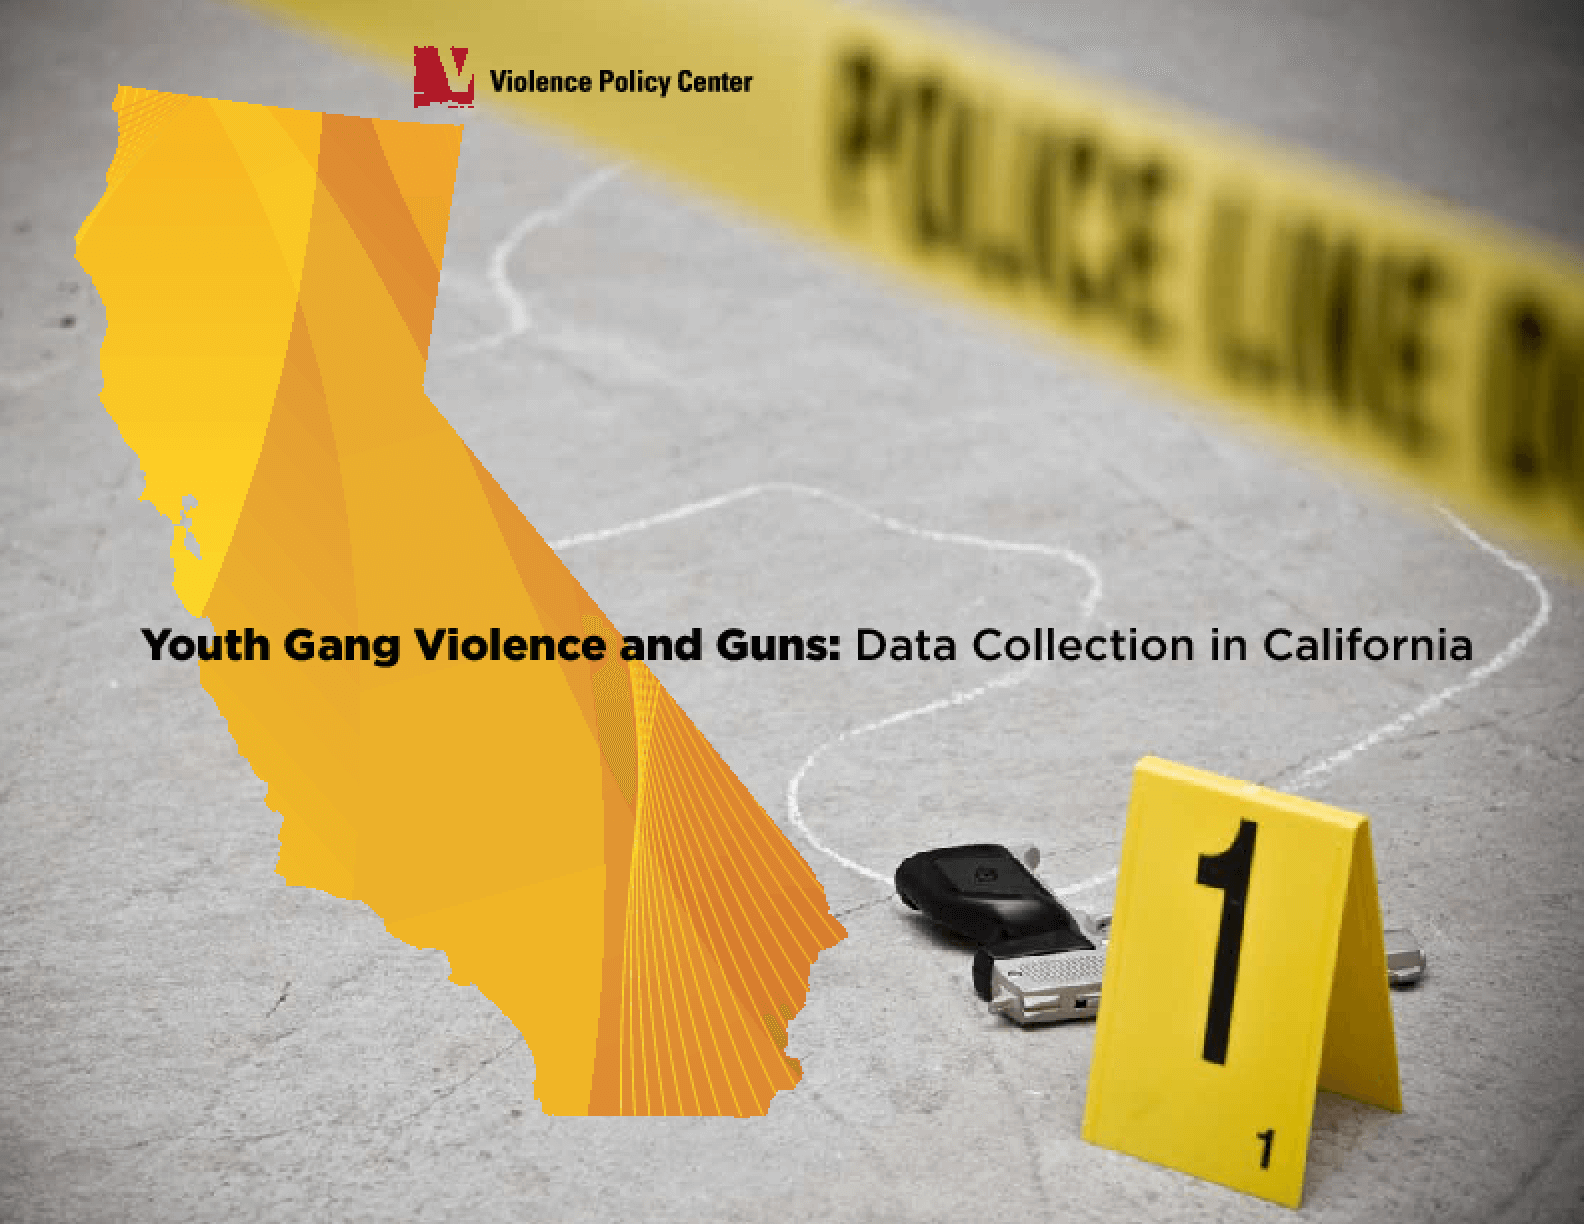 Youth Gang Violence and Guns: Data Collection in California